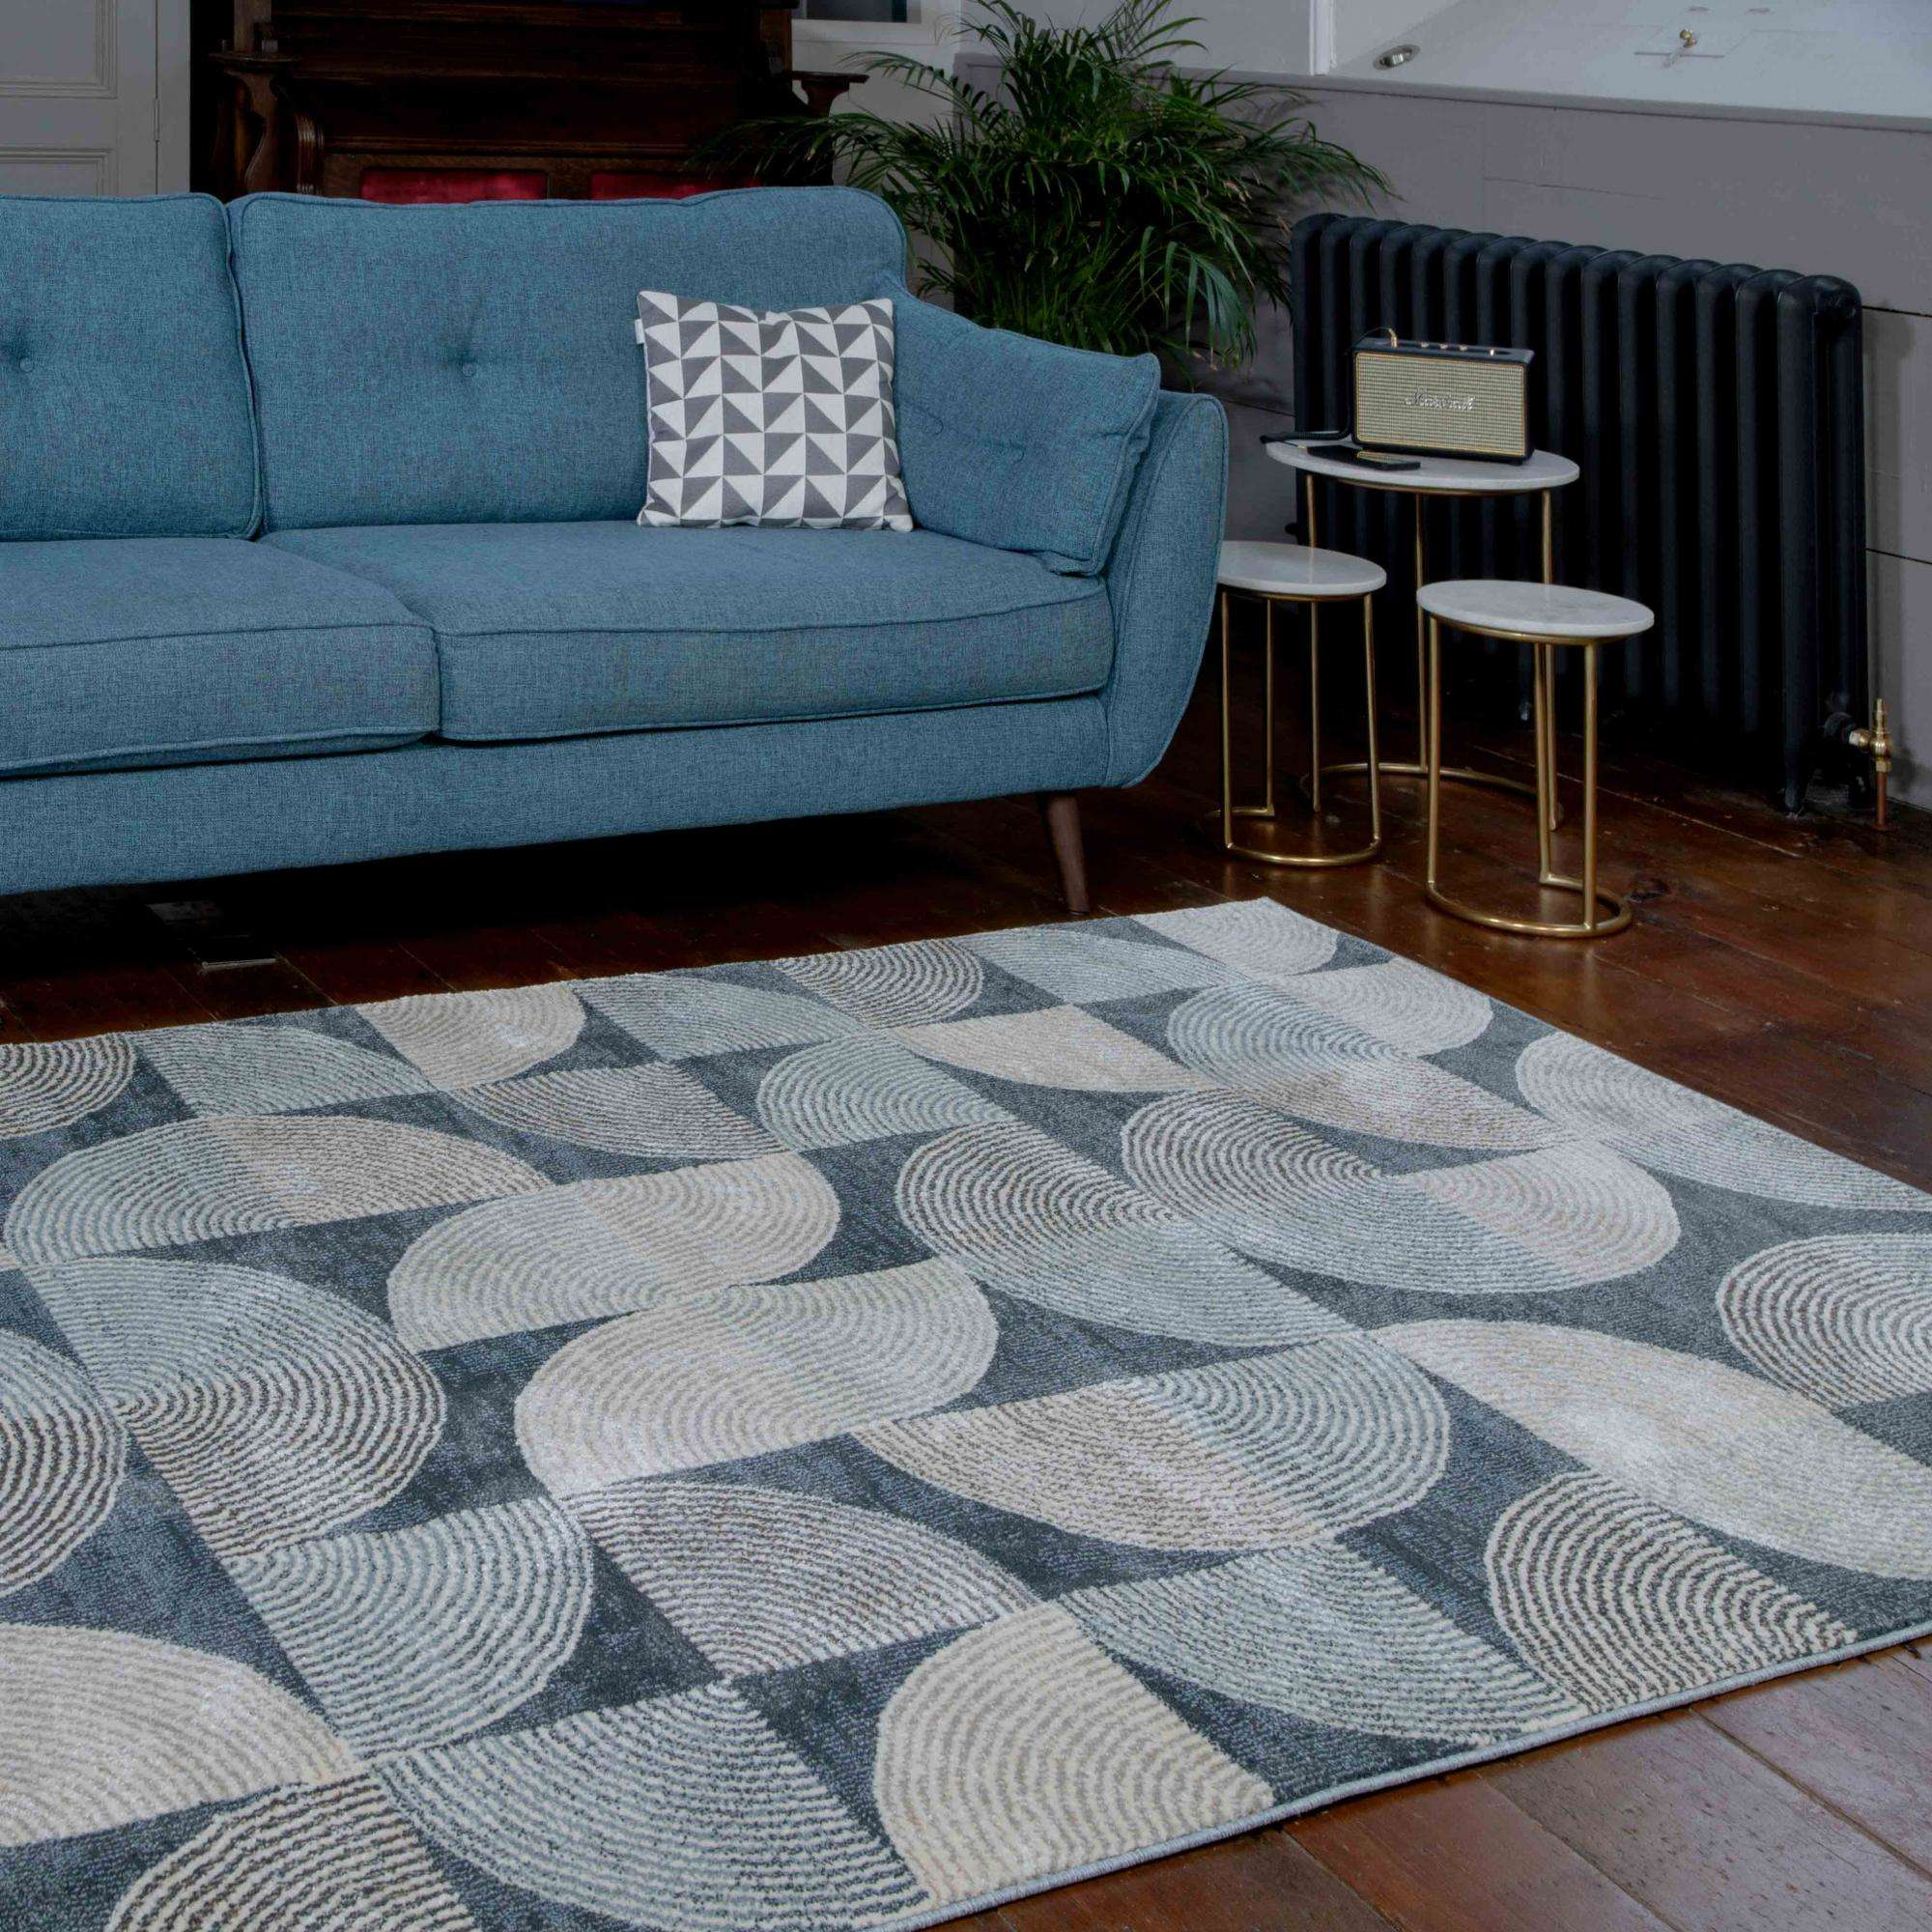 Soft Modern Blue Geometric Abstract Living Room Rugs - Riviera